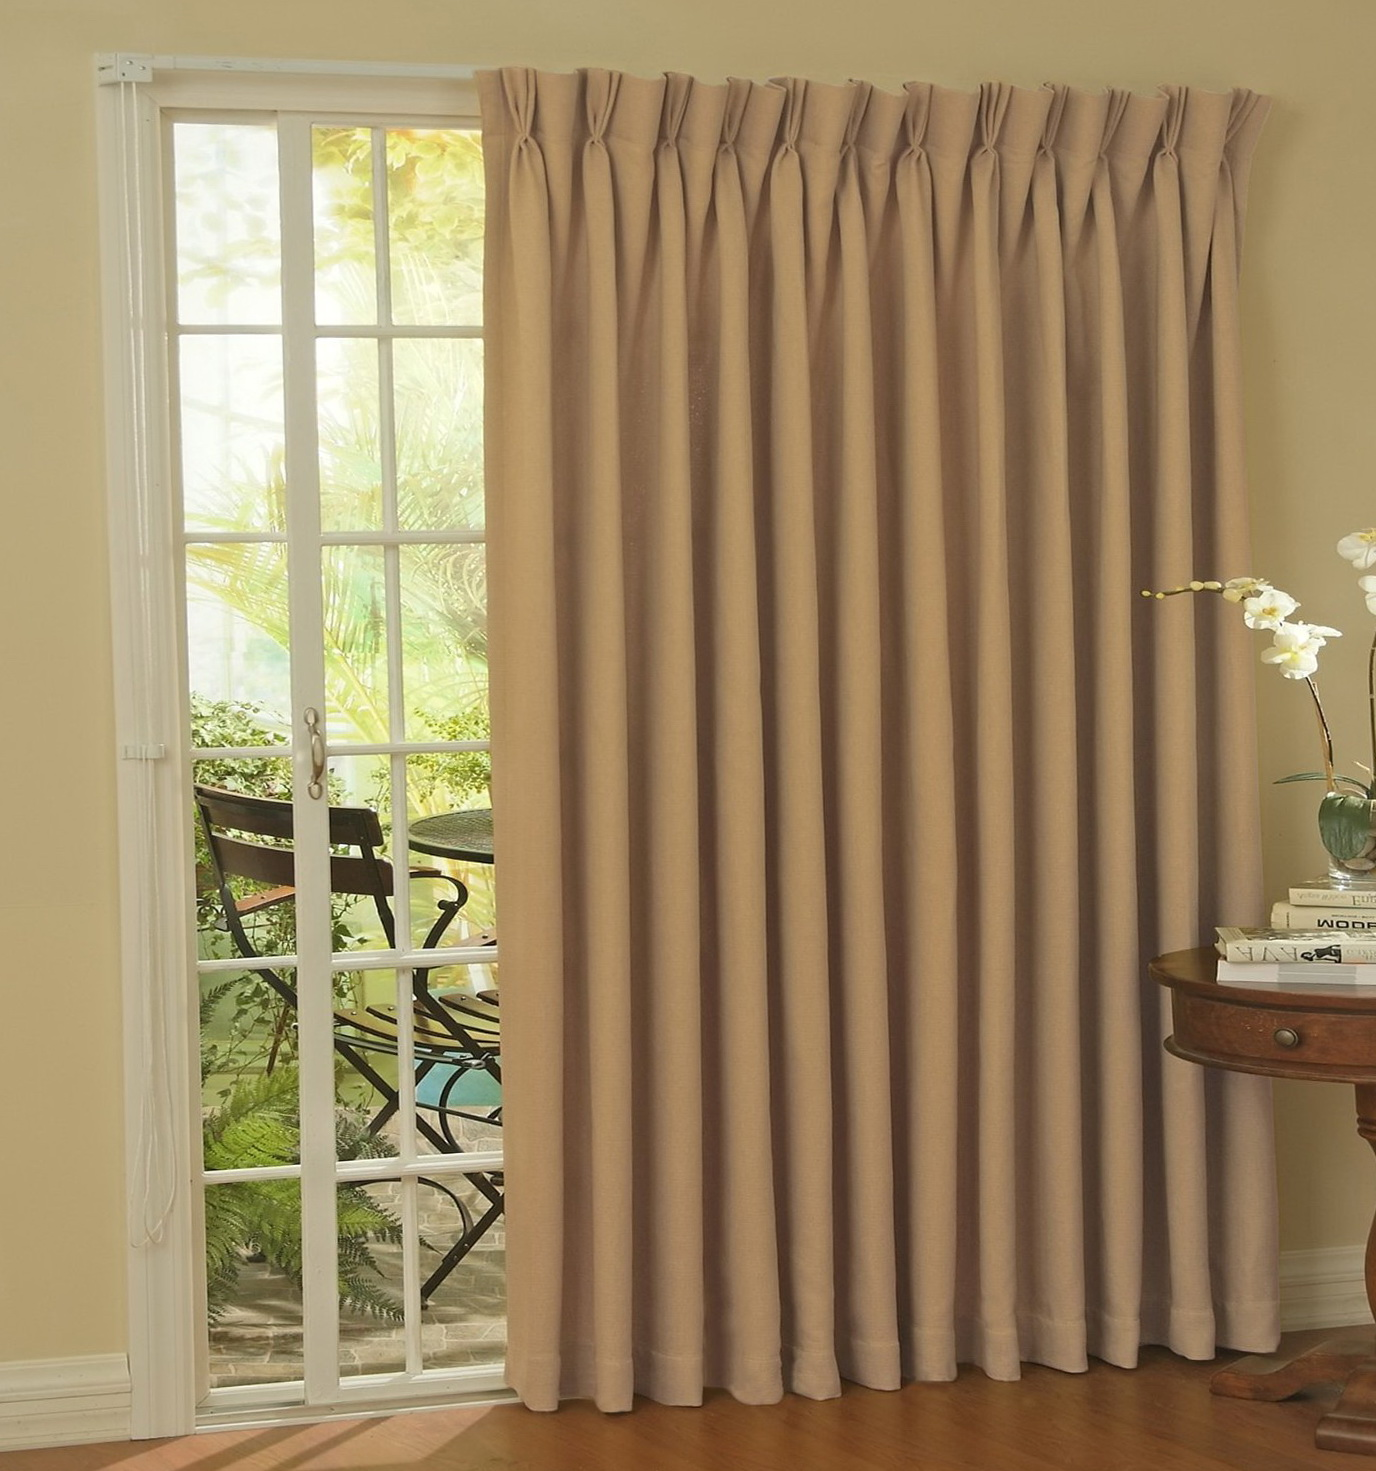 Thermal Lined Curtains For Sliding Glass Doors Home